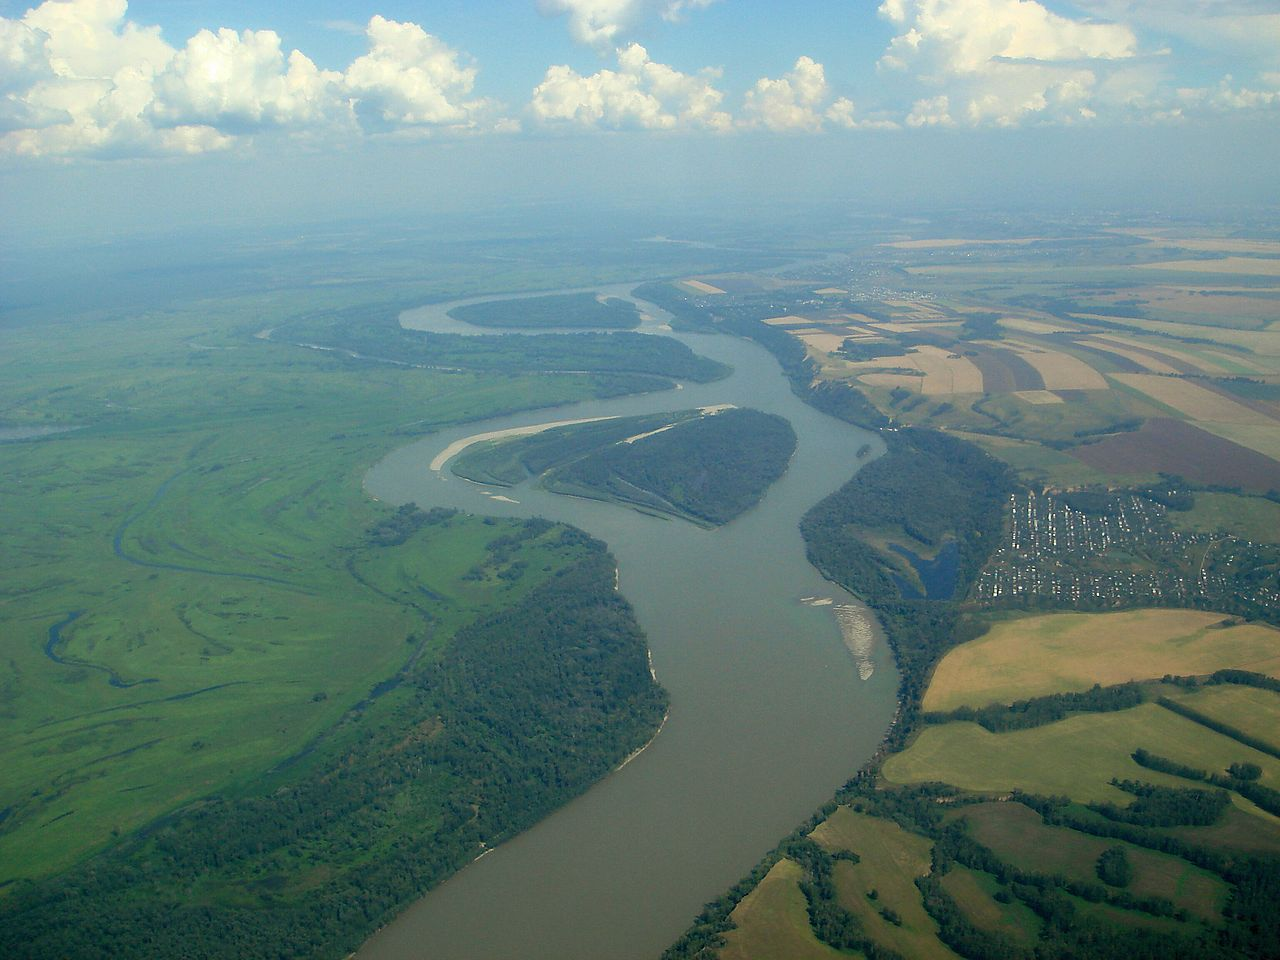 Is the longest river found